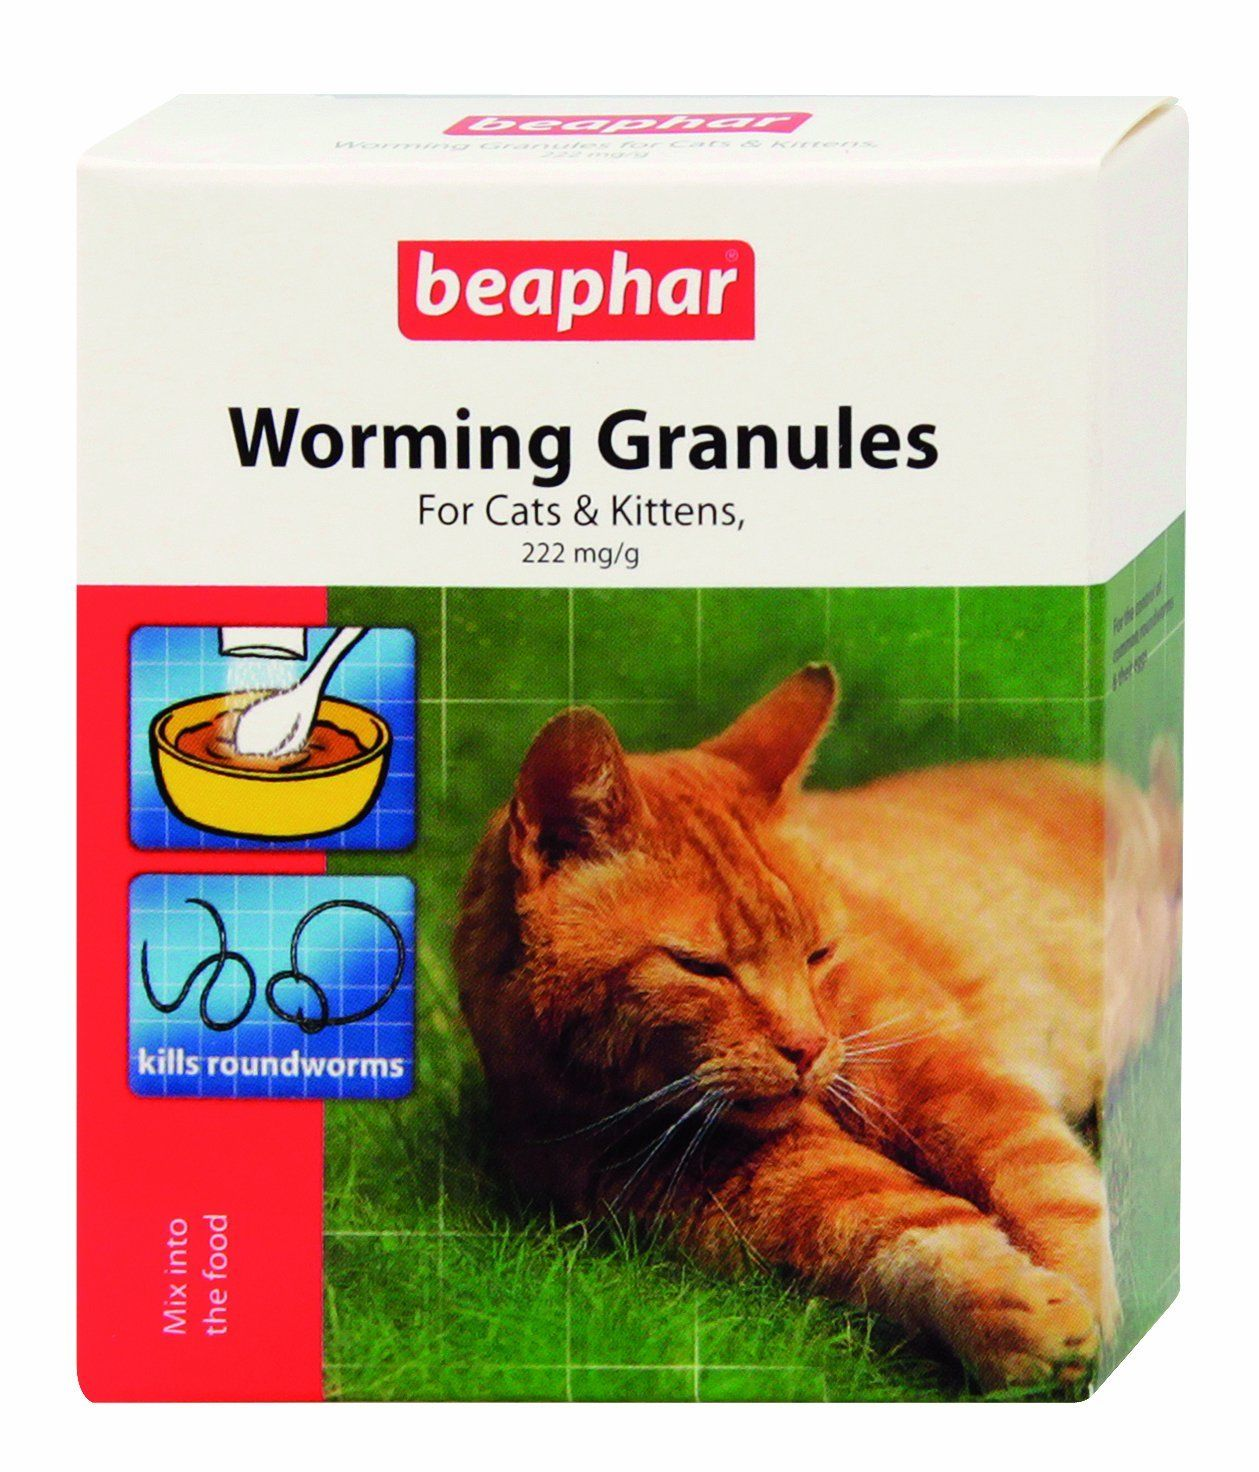 Beaphar Worming Granules For Cats 4 X 1 G Pack Of 2 Total 8 Packets Find Out More At The Image Link Cath Cats And Kittens Cat Dewormer Cat Pet Supplies